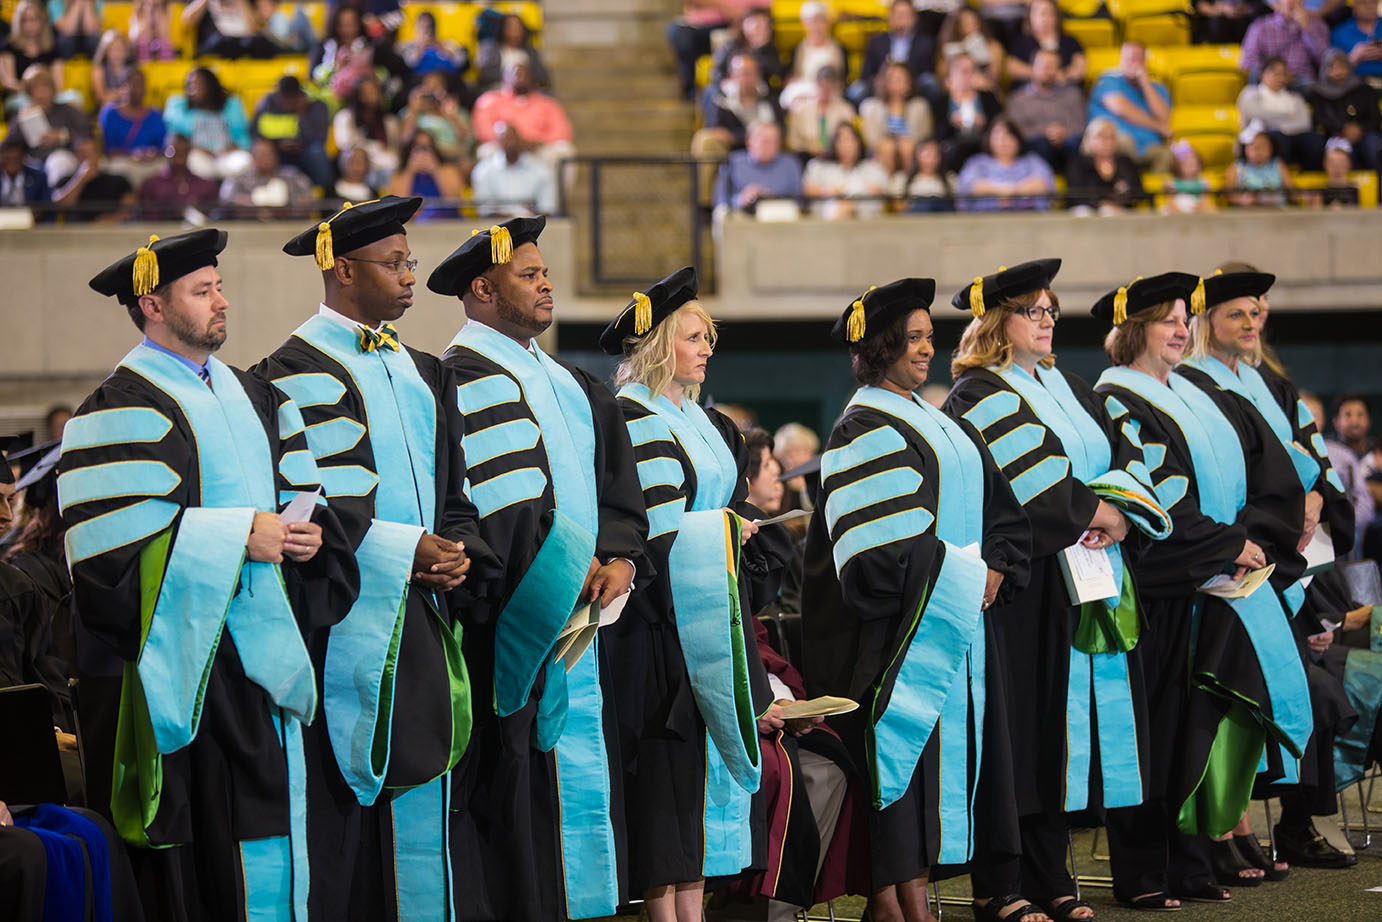 Recipients of Masters Degrees line up at graduation